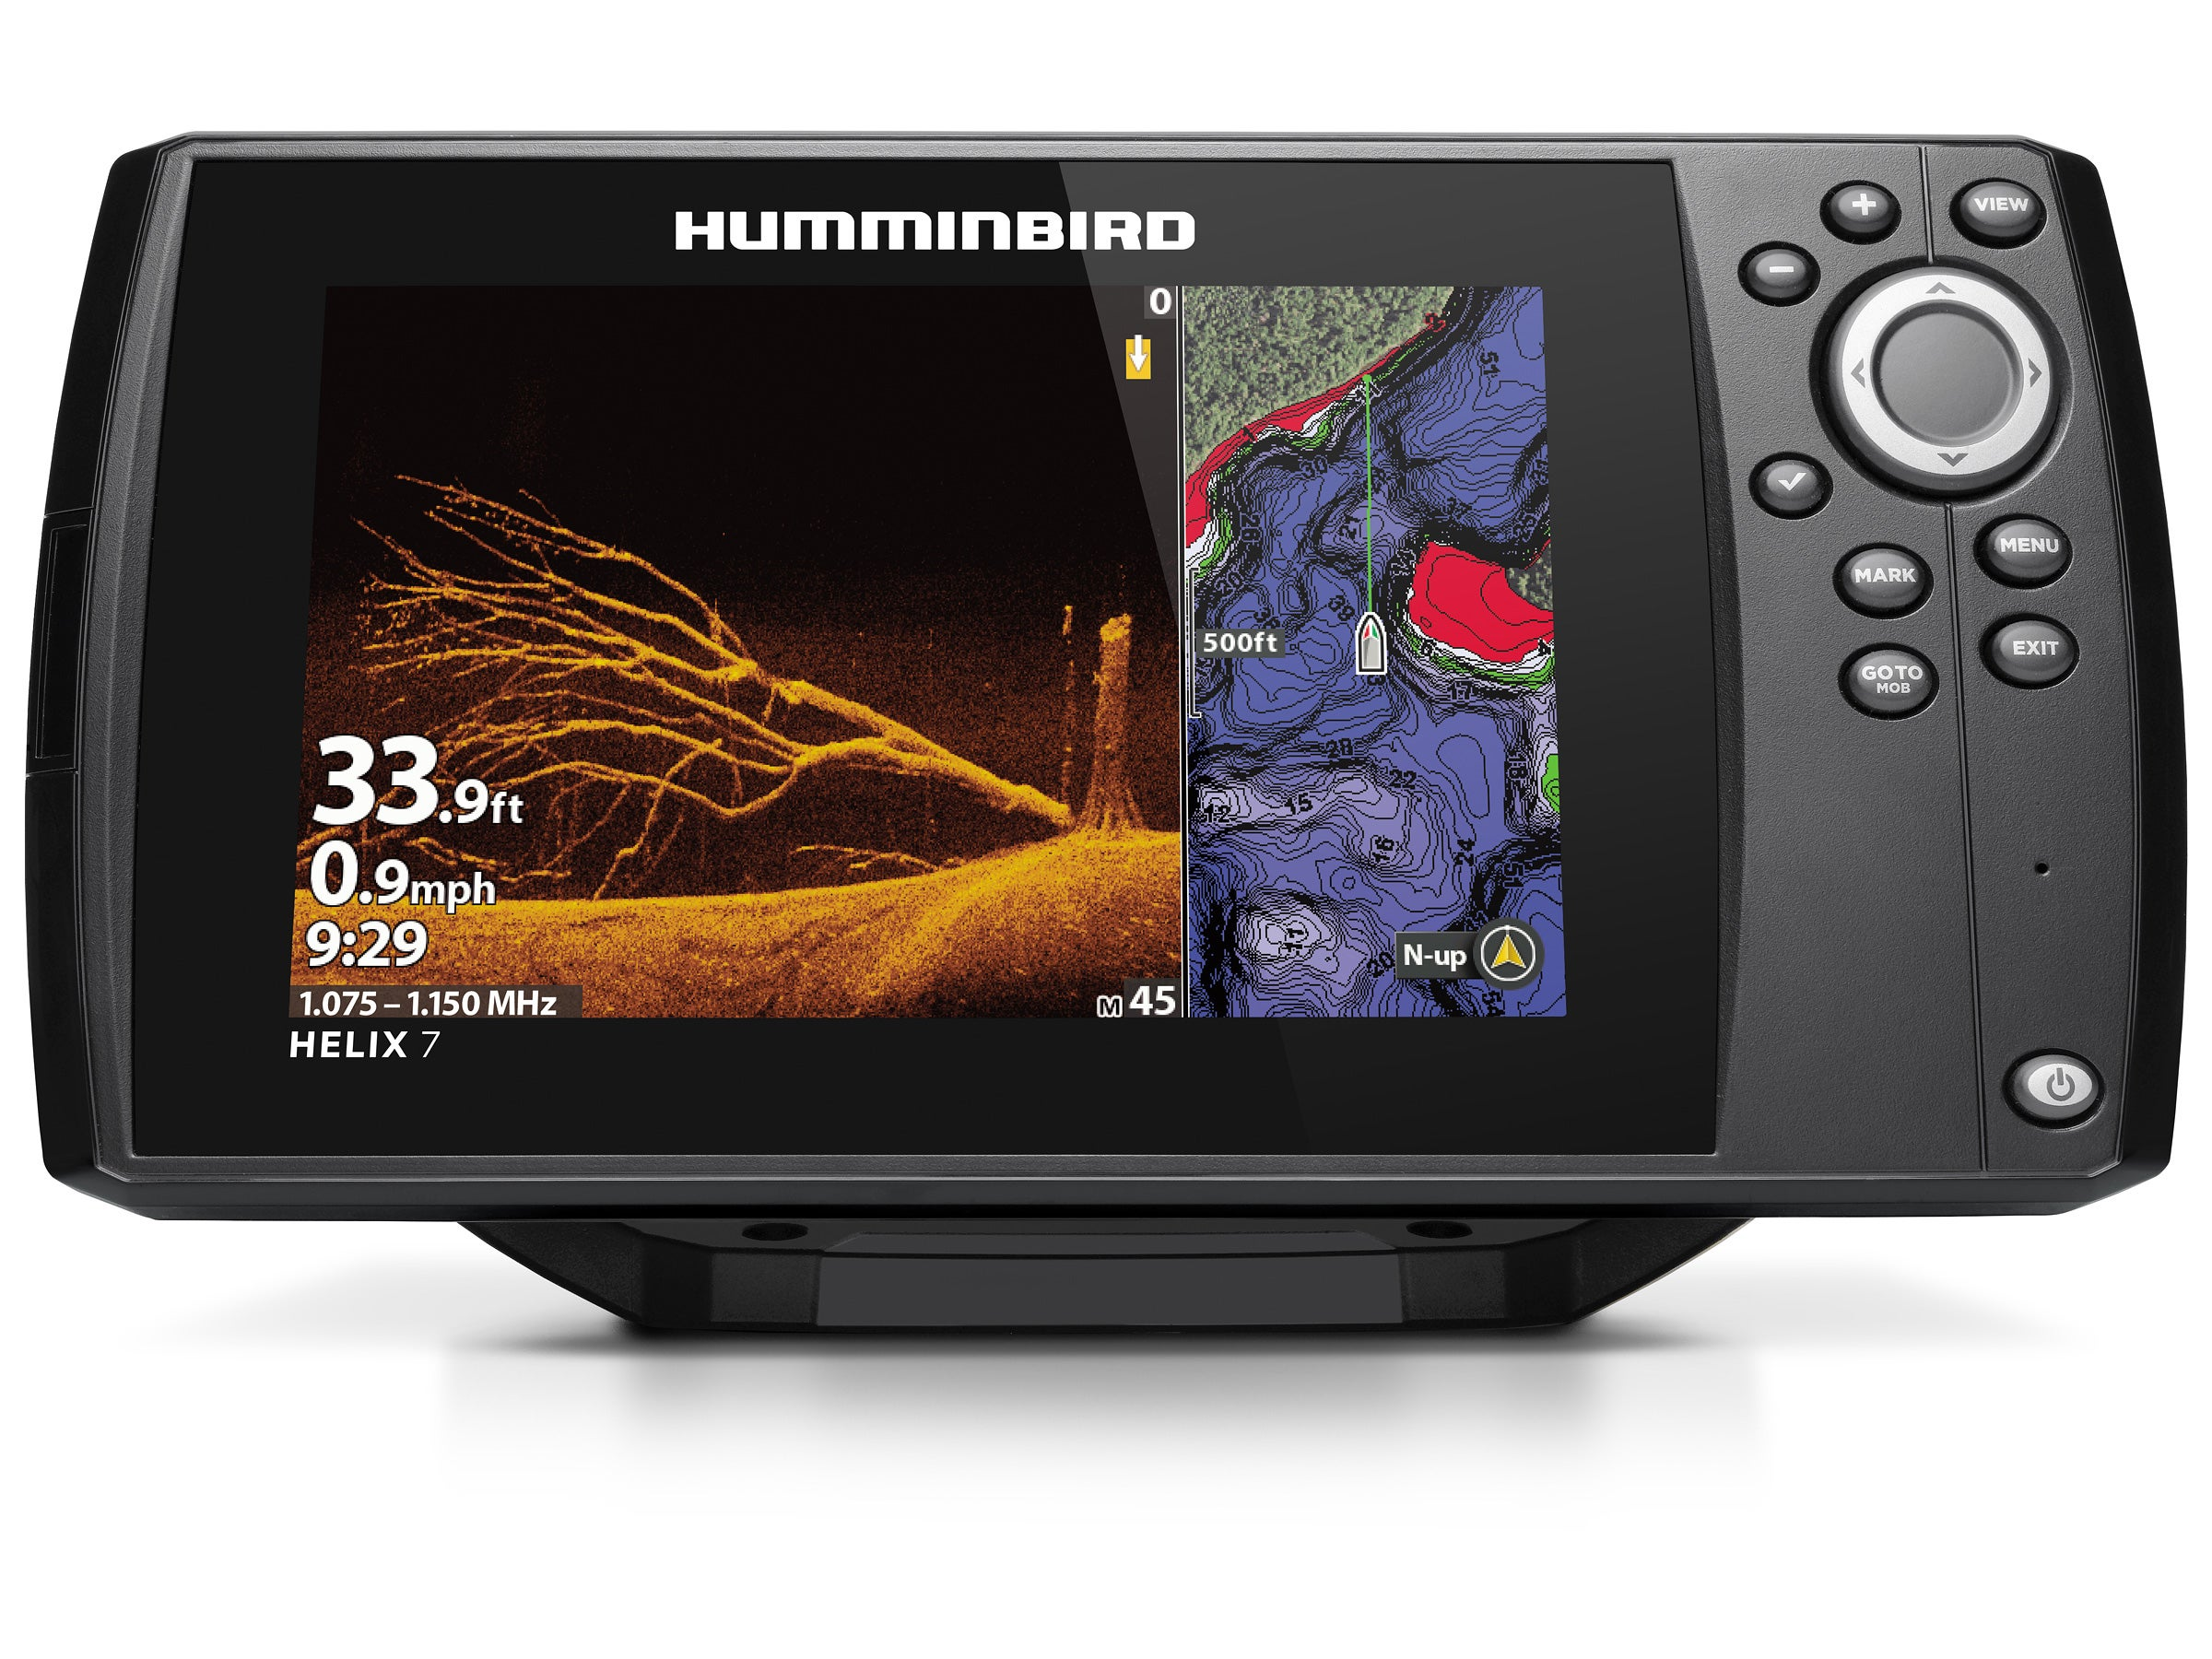 Humminbird Helix 7 CHIRP G3 Sonar - Tackle Warehouse